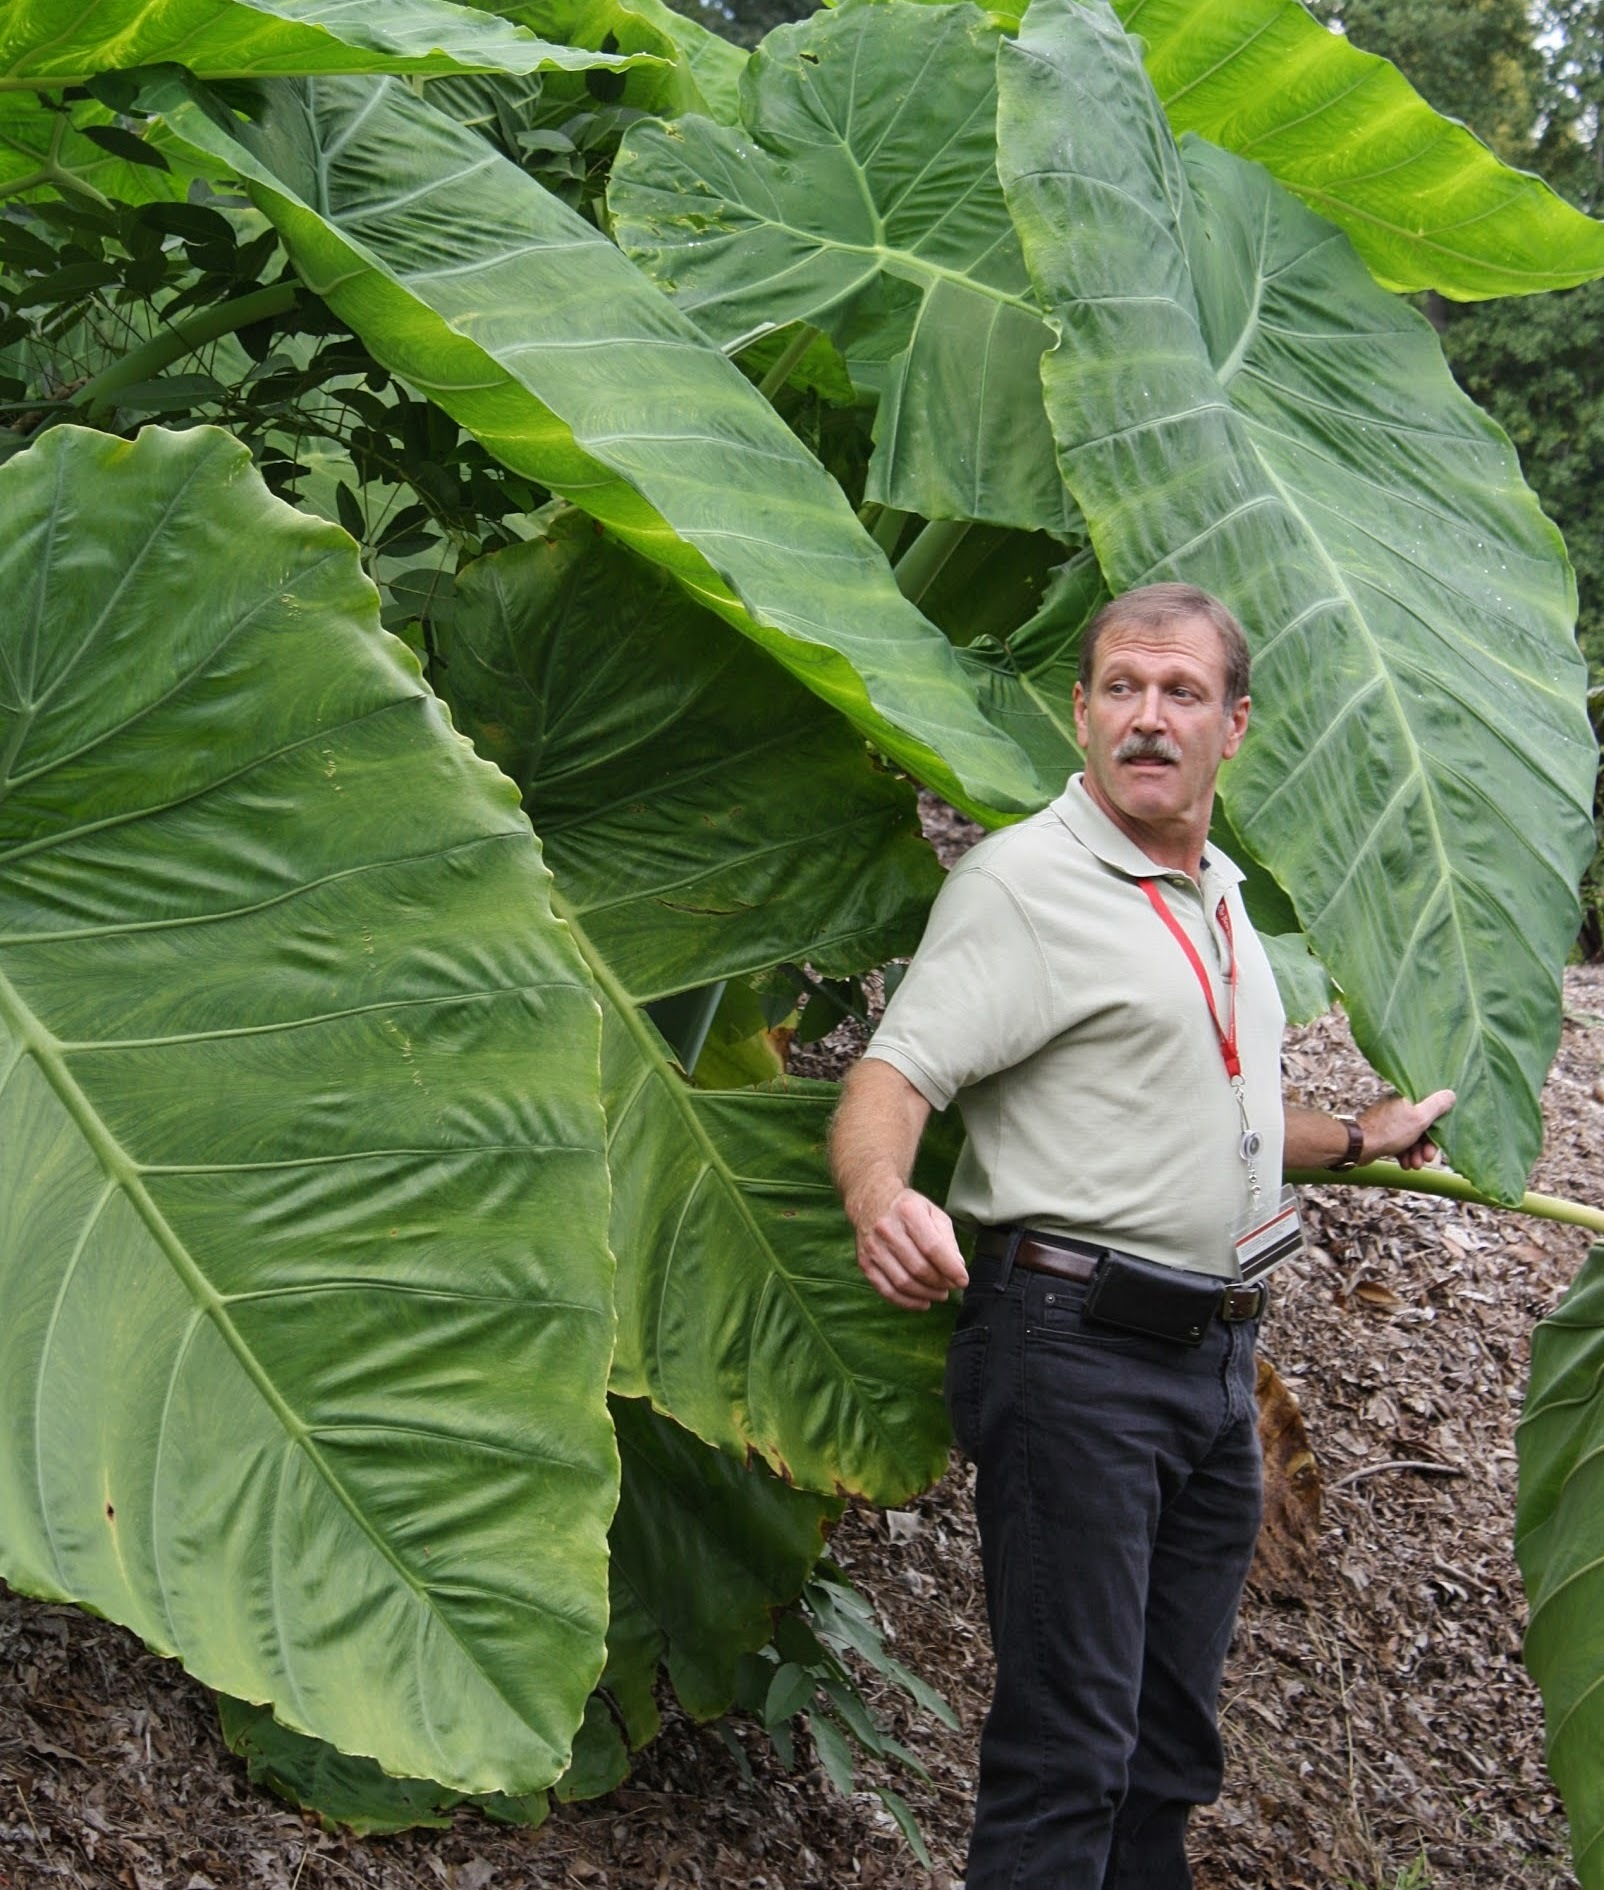 Leucocasia (colocasia) gigantea 'Laosy Giant' with Alan Galloway @ JLBG - a 2011 Alan Galloway collection from Laos; named and introduced by Plant Delights/JLBG in 2015